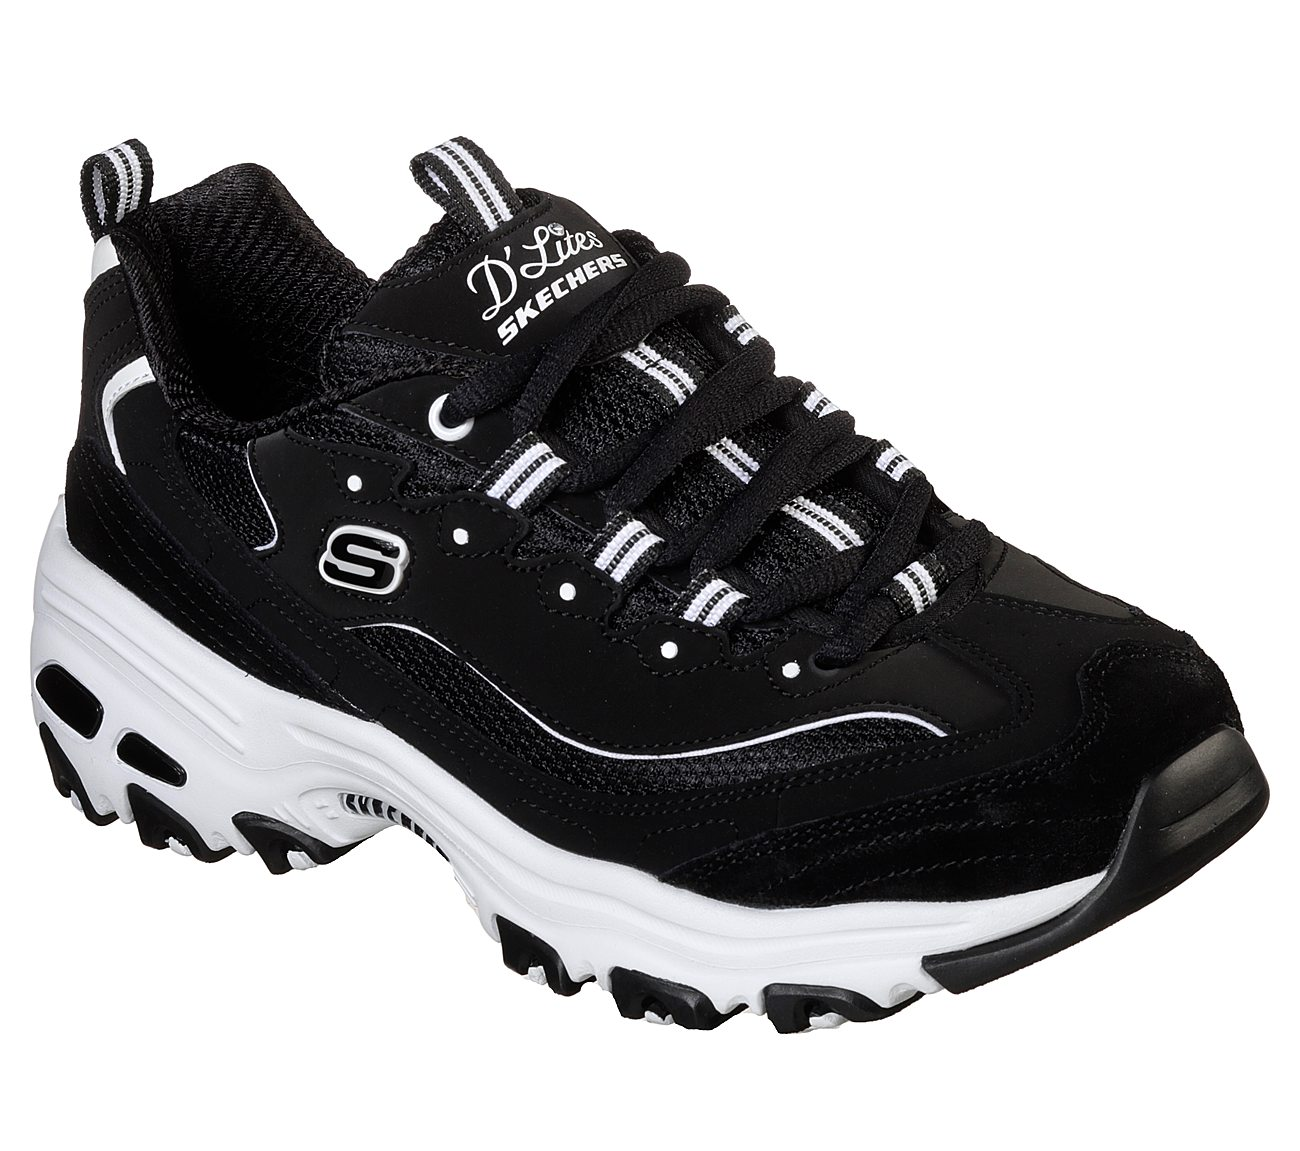 d5247aba71 Buy SKECHERS D'Lites - March Forward D'Lites Shoes only $70.00